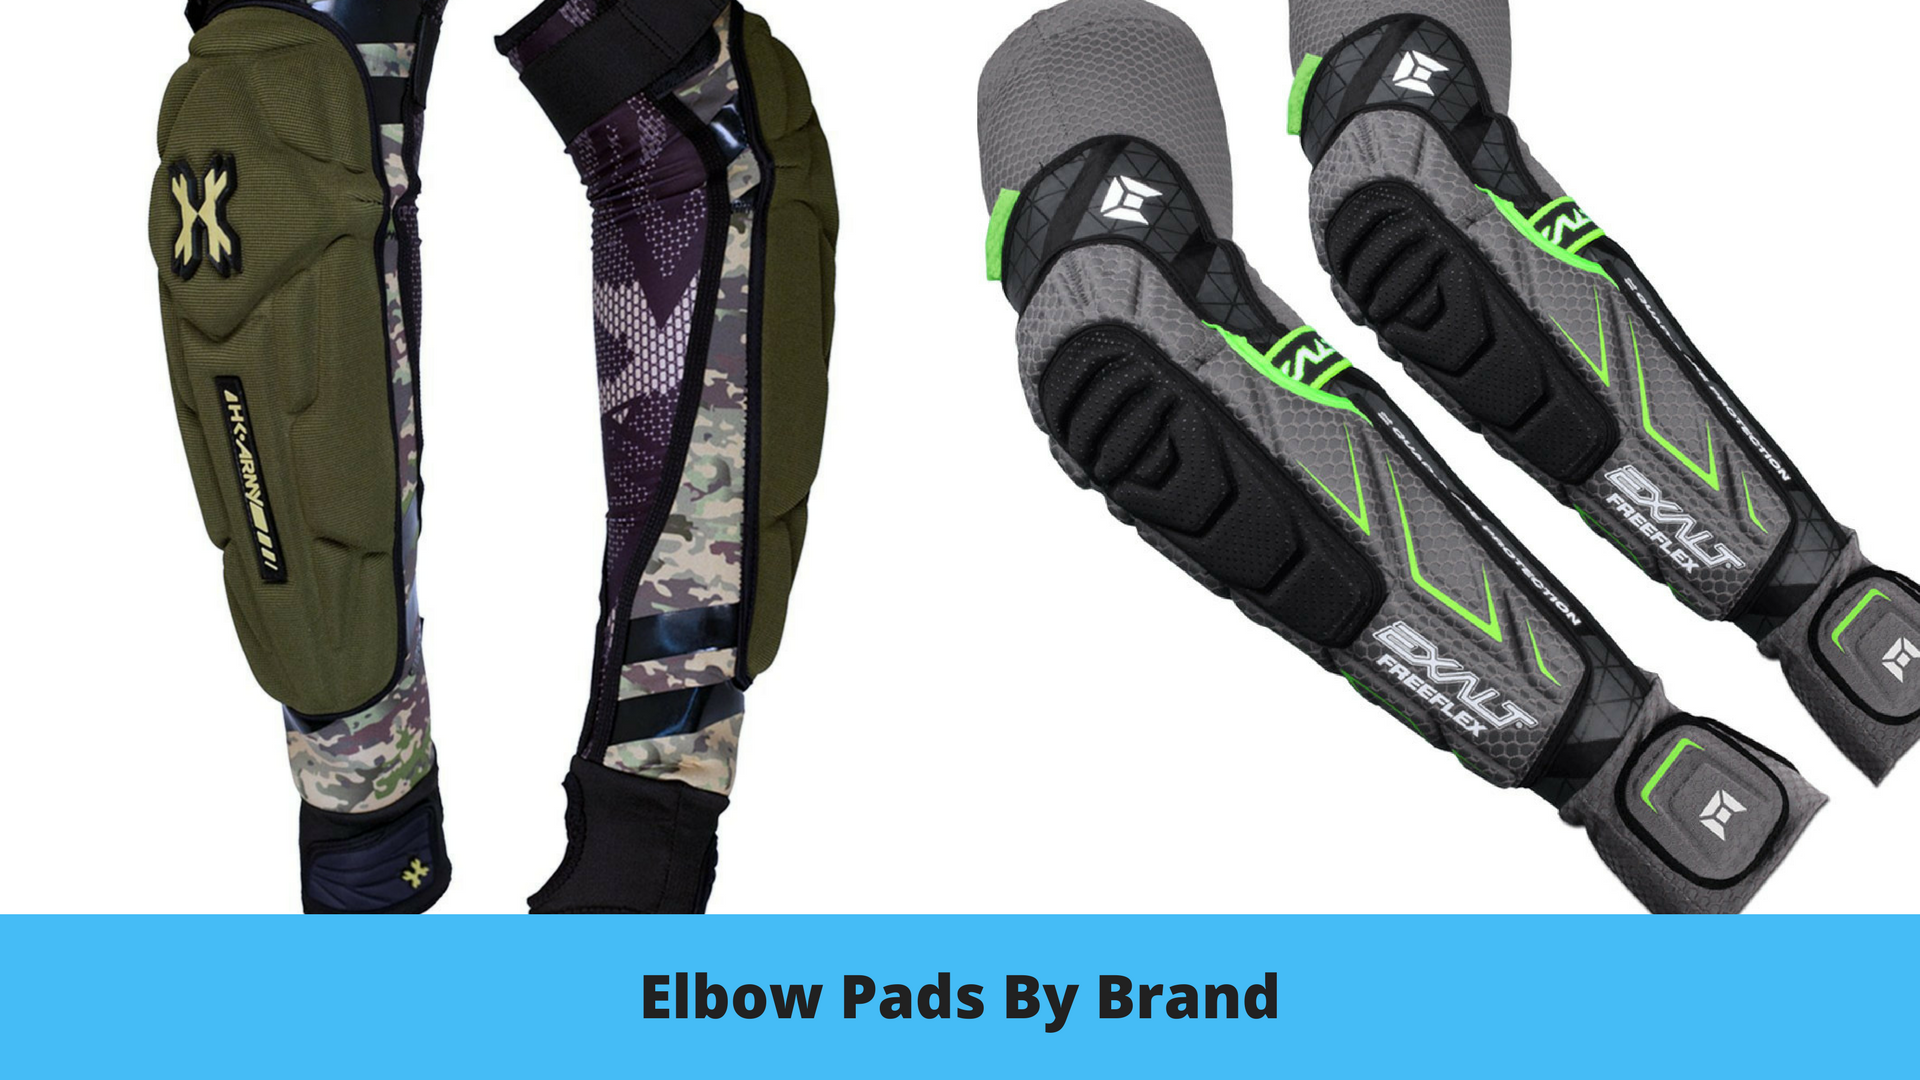 Elbow Pads by Brand